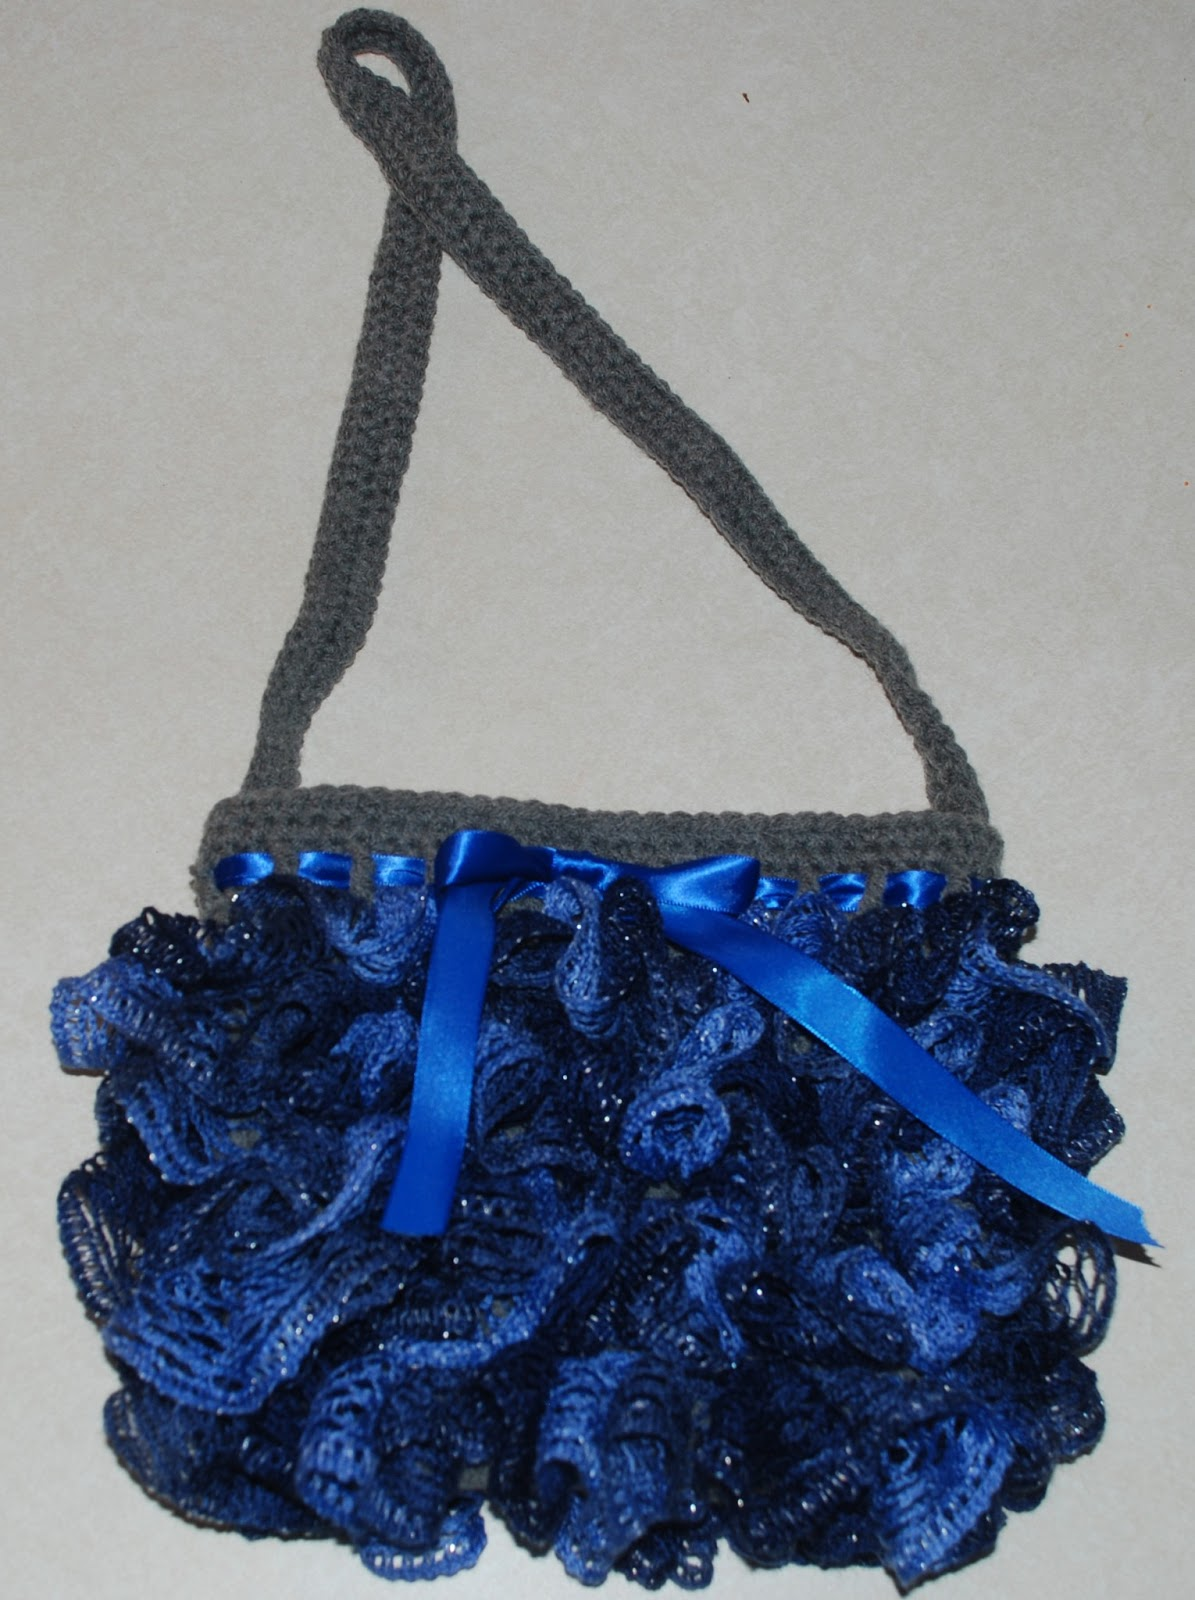 Amys Crochet Creative Creations: Crochet Sashay Yarn Purse